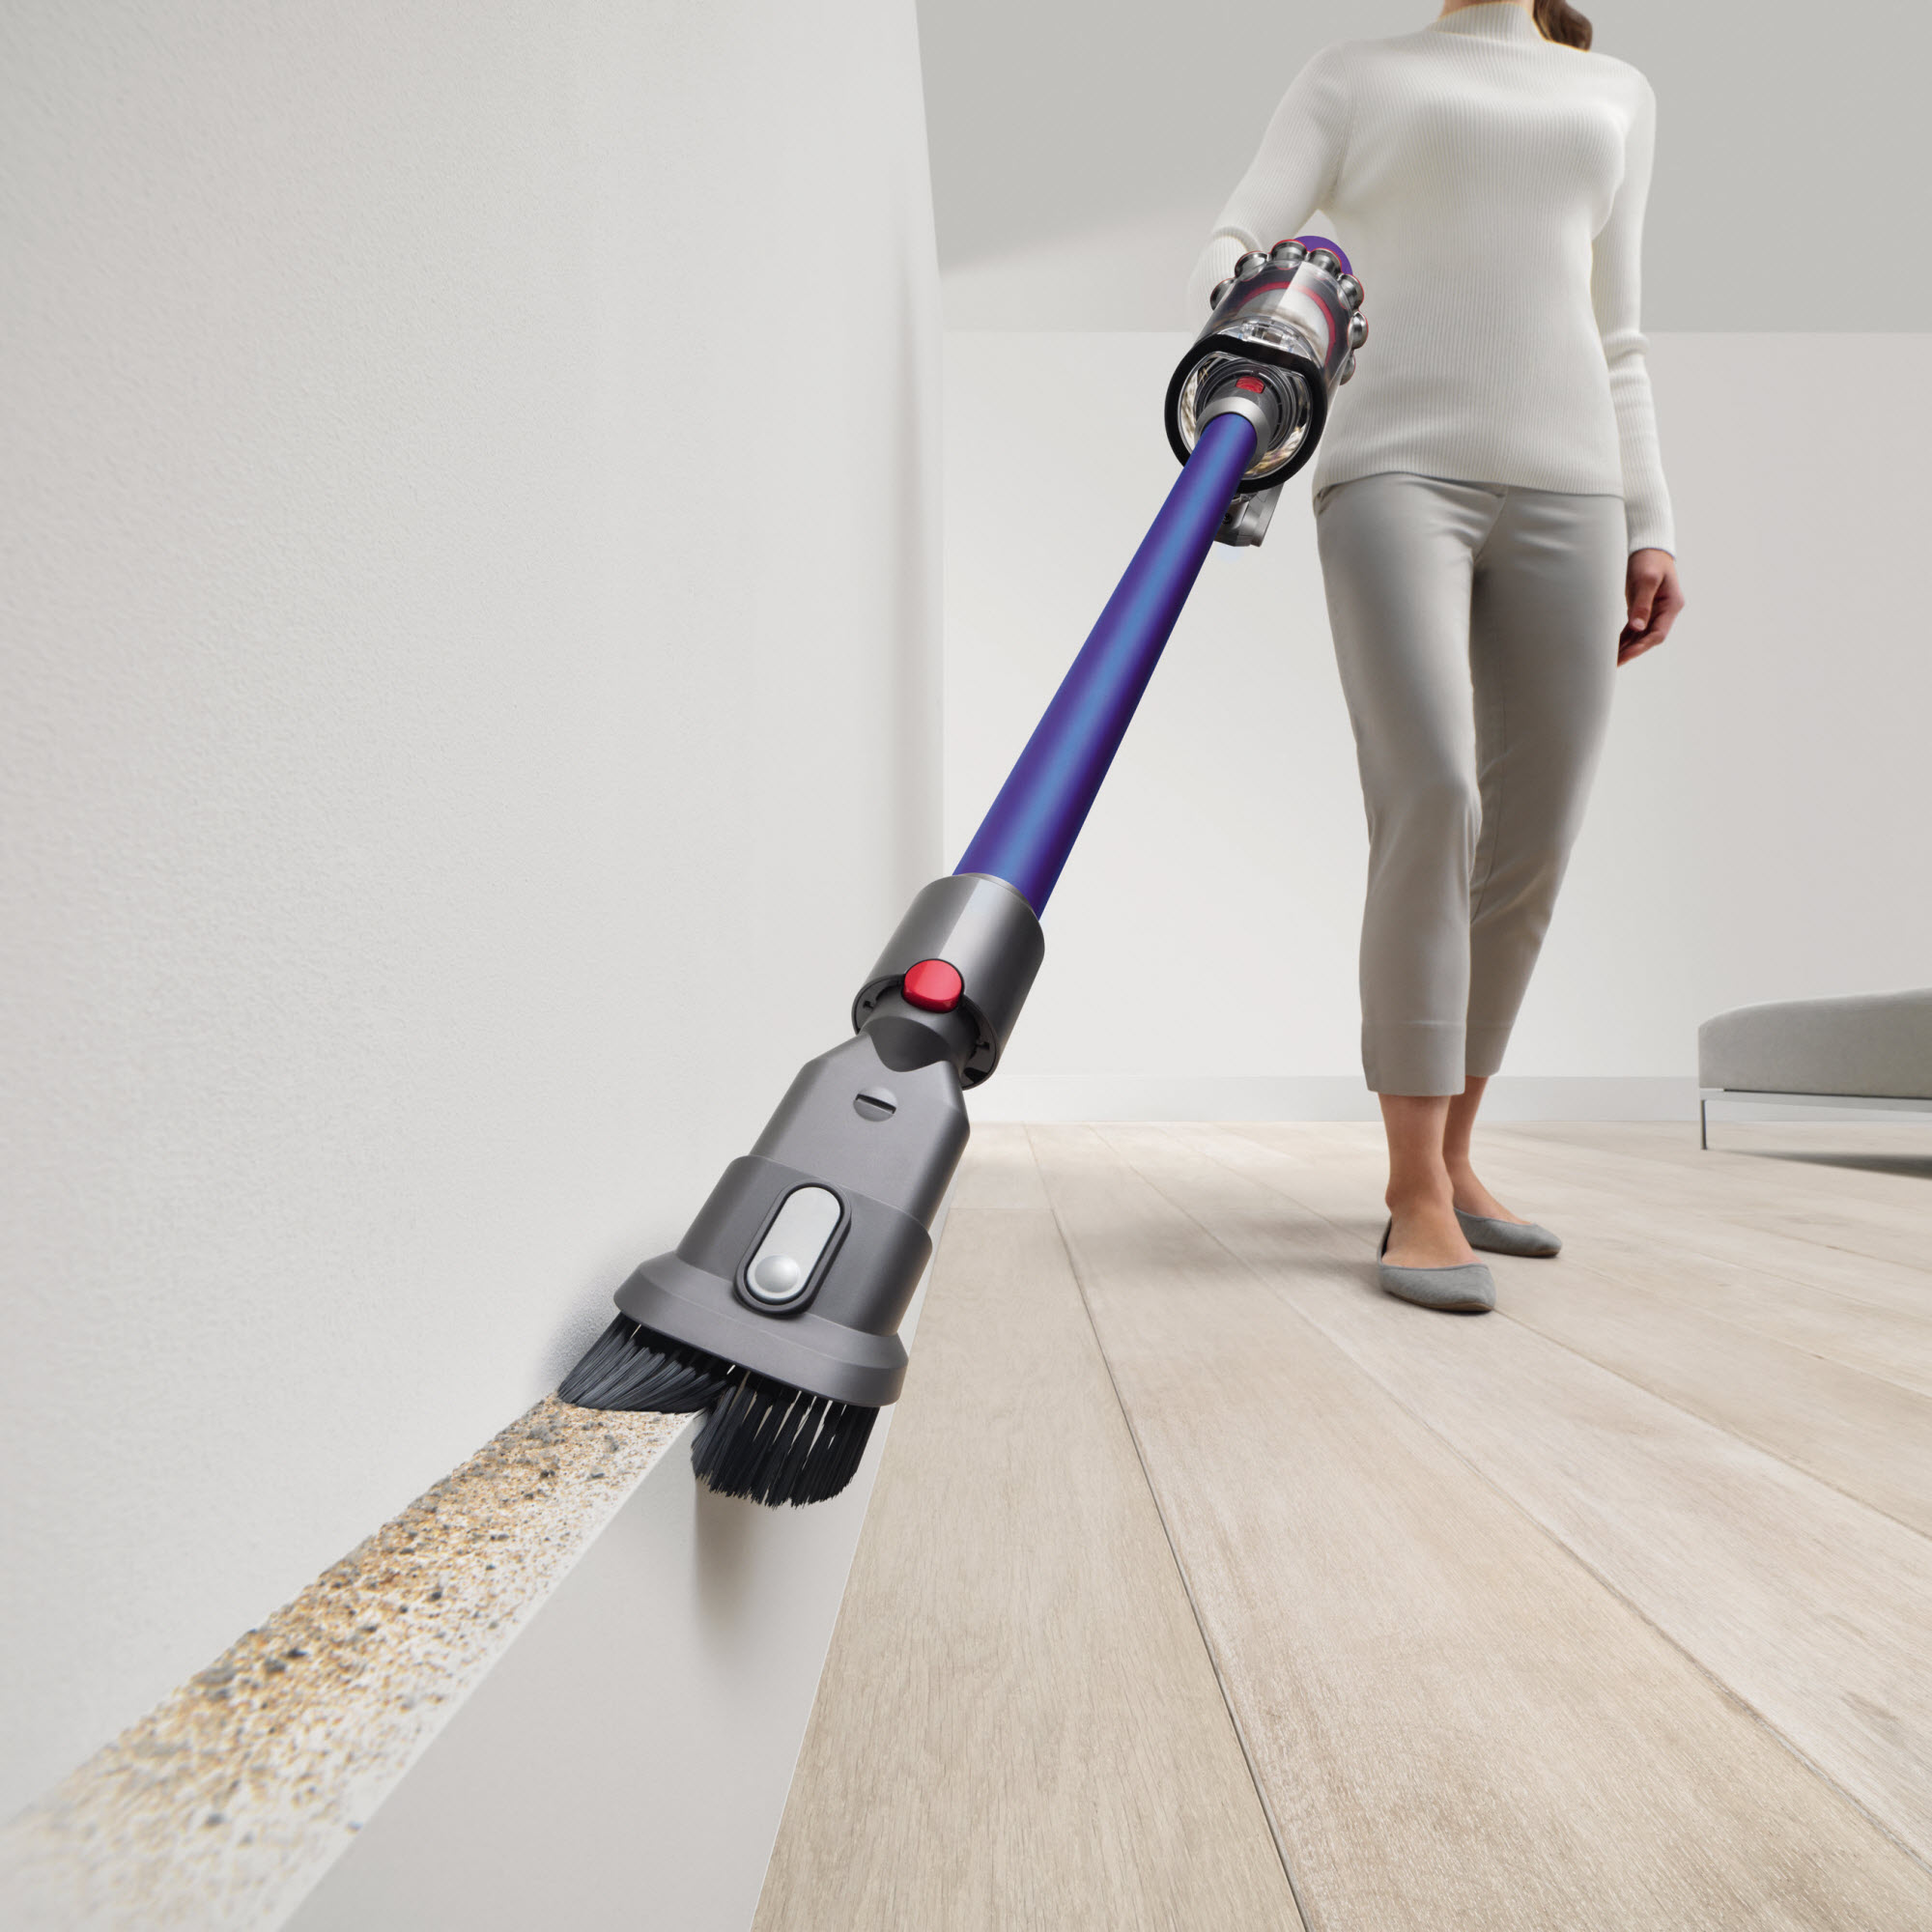 Dyson-V10-Absolute-Cordless-Vacuum-Cleaner-Refurbished thumbnail 16